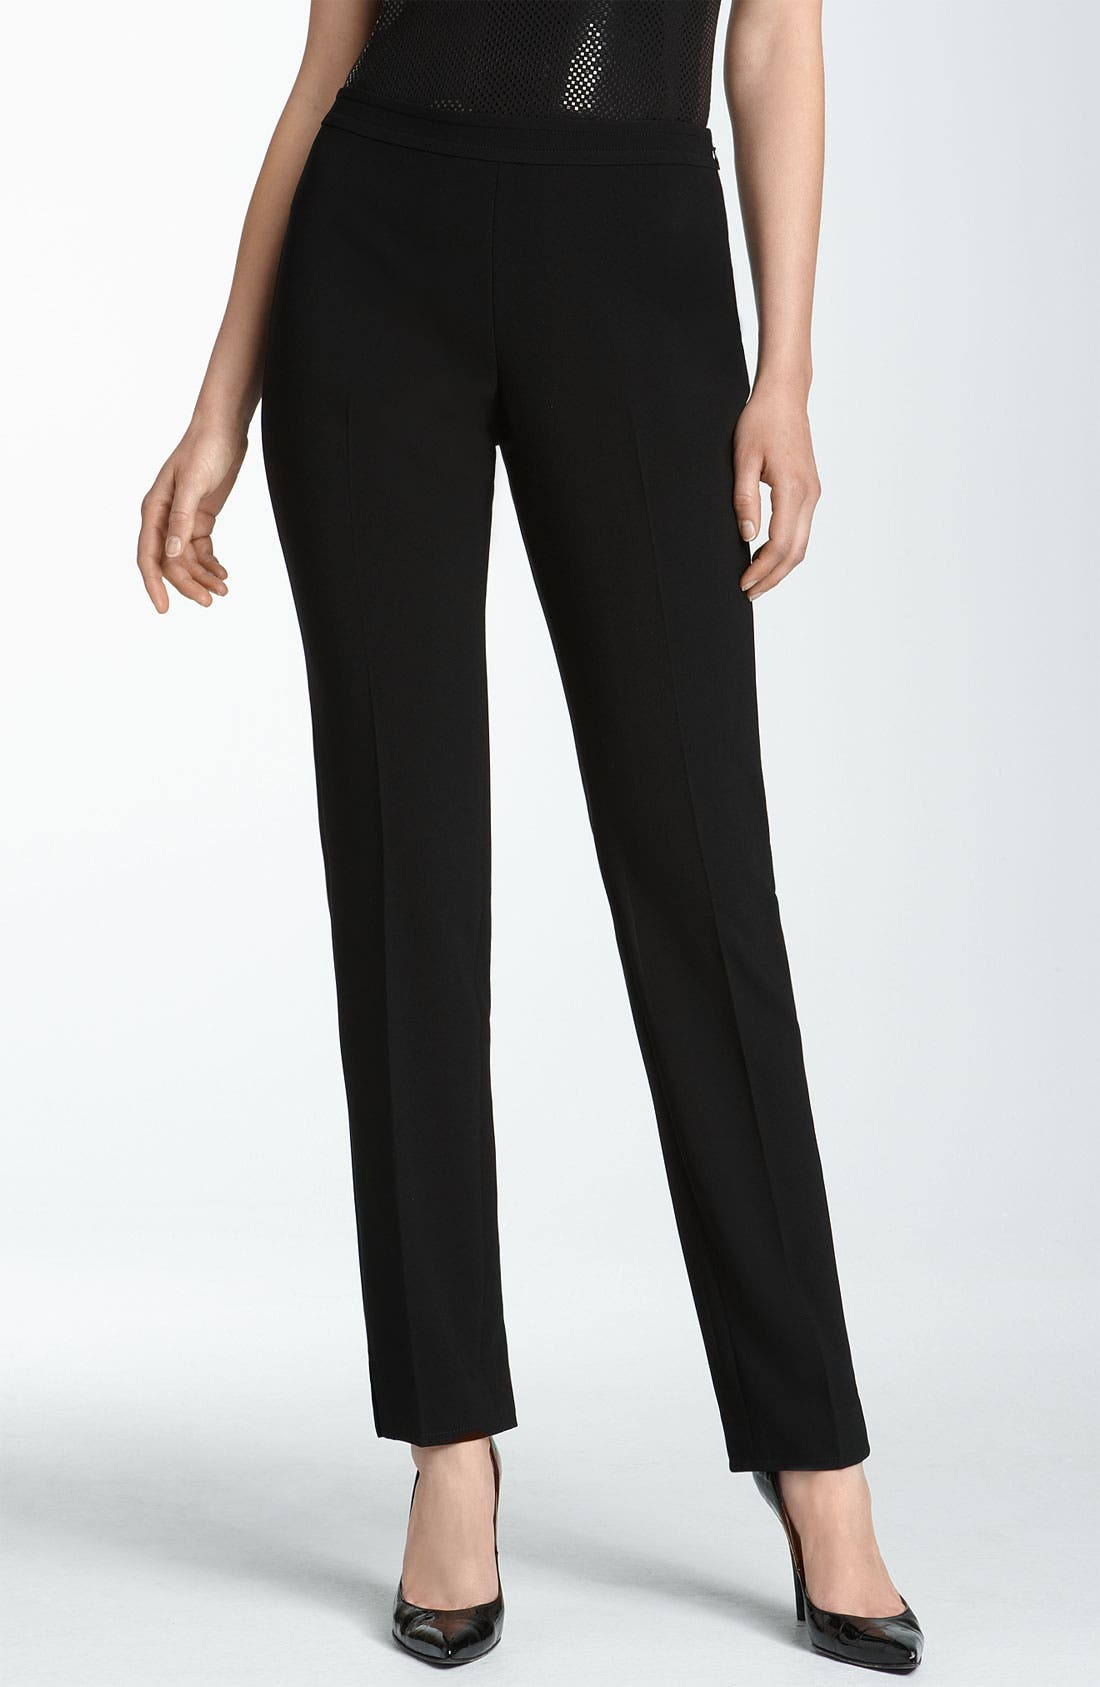 Alternate Image 1 Selected - St. John Collection Crepe Marocain Ankle Pants